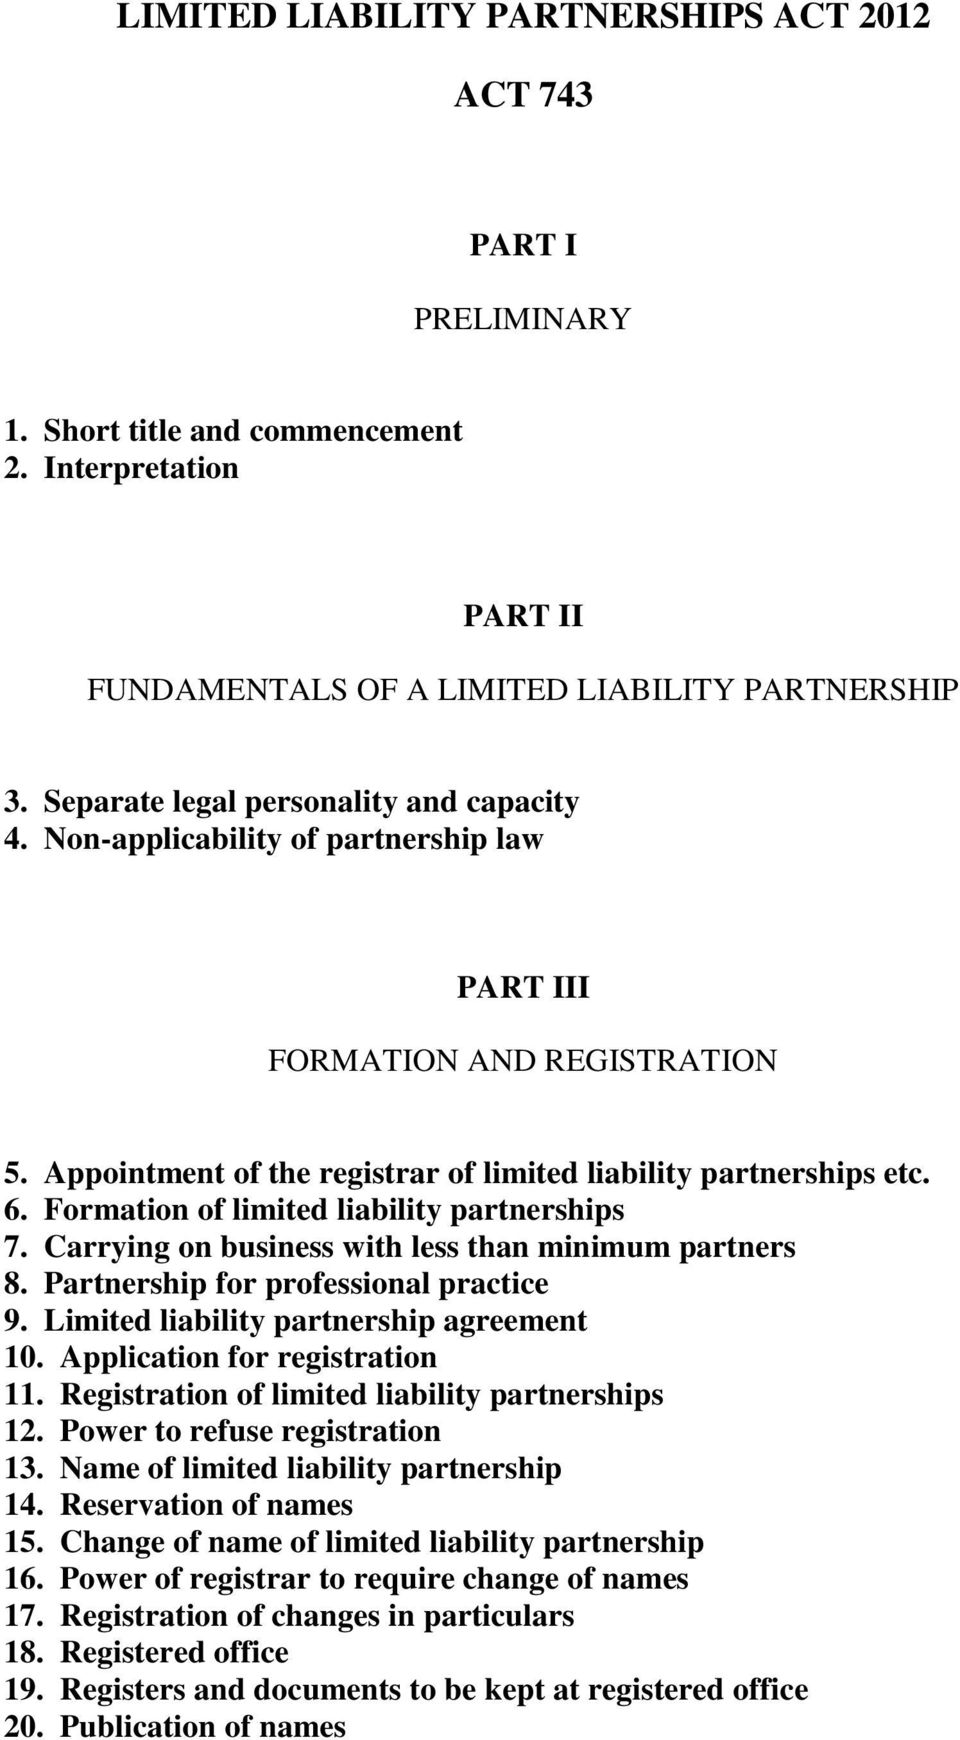 Formation of limited liability partnerships 7. Carrying on business with less than minimum partners 8. Partnership for professional practice 9. Limited liability partnership agreement 10.